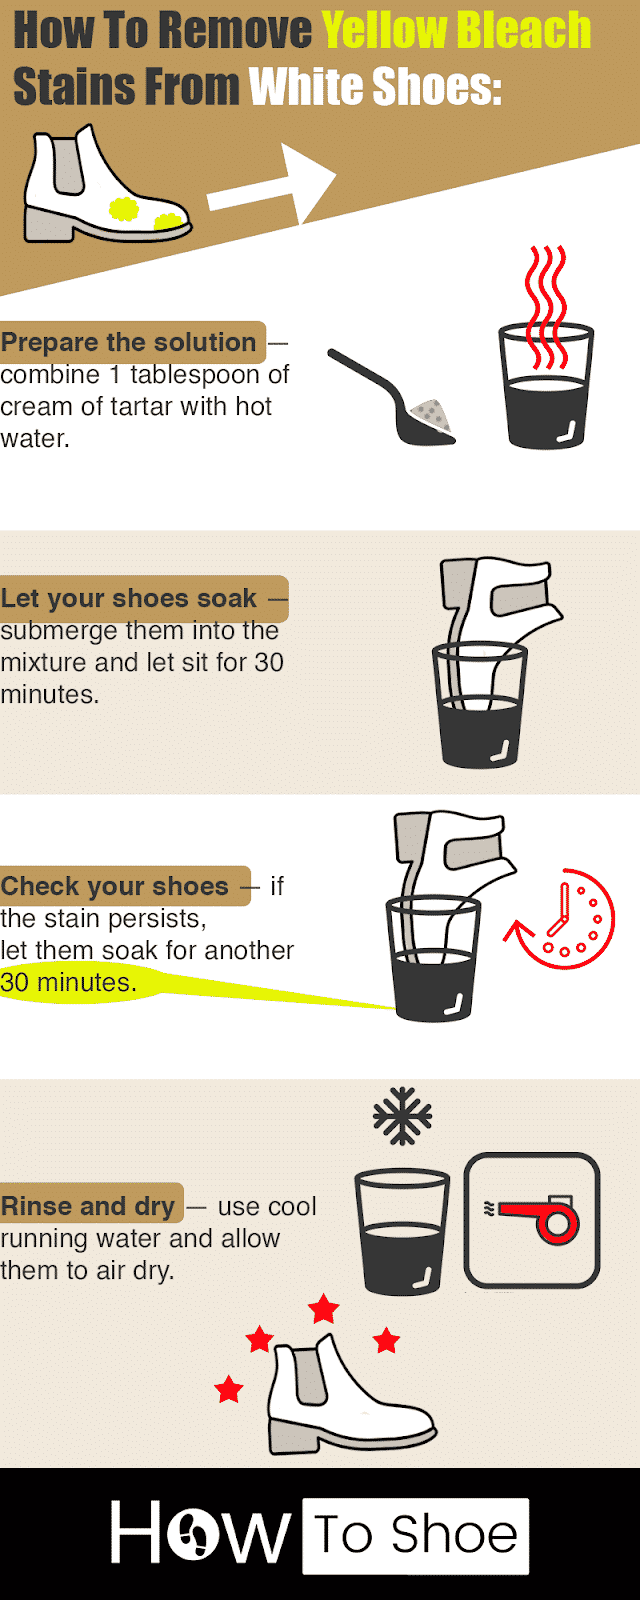 remove yellow bleach stains from white shoes